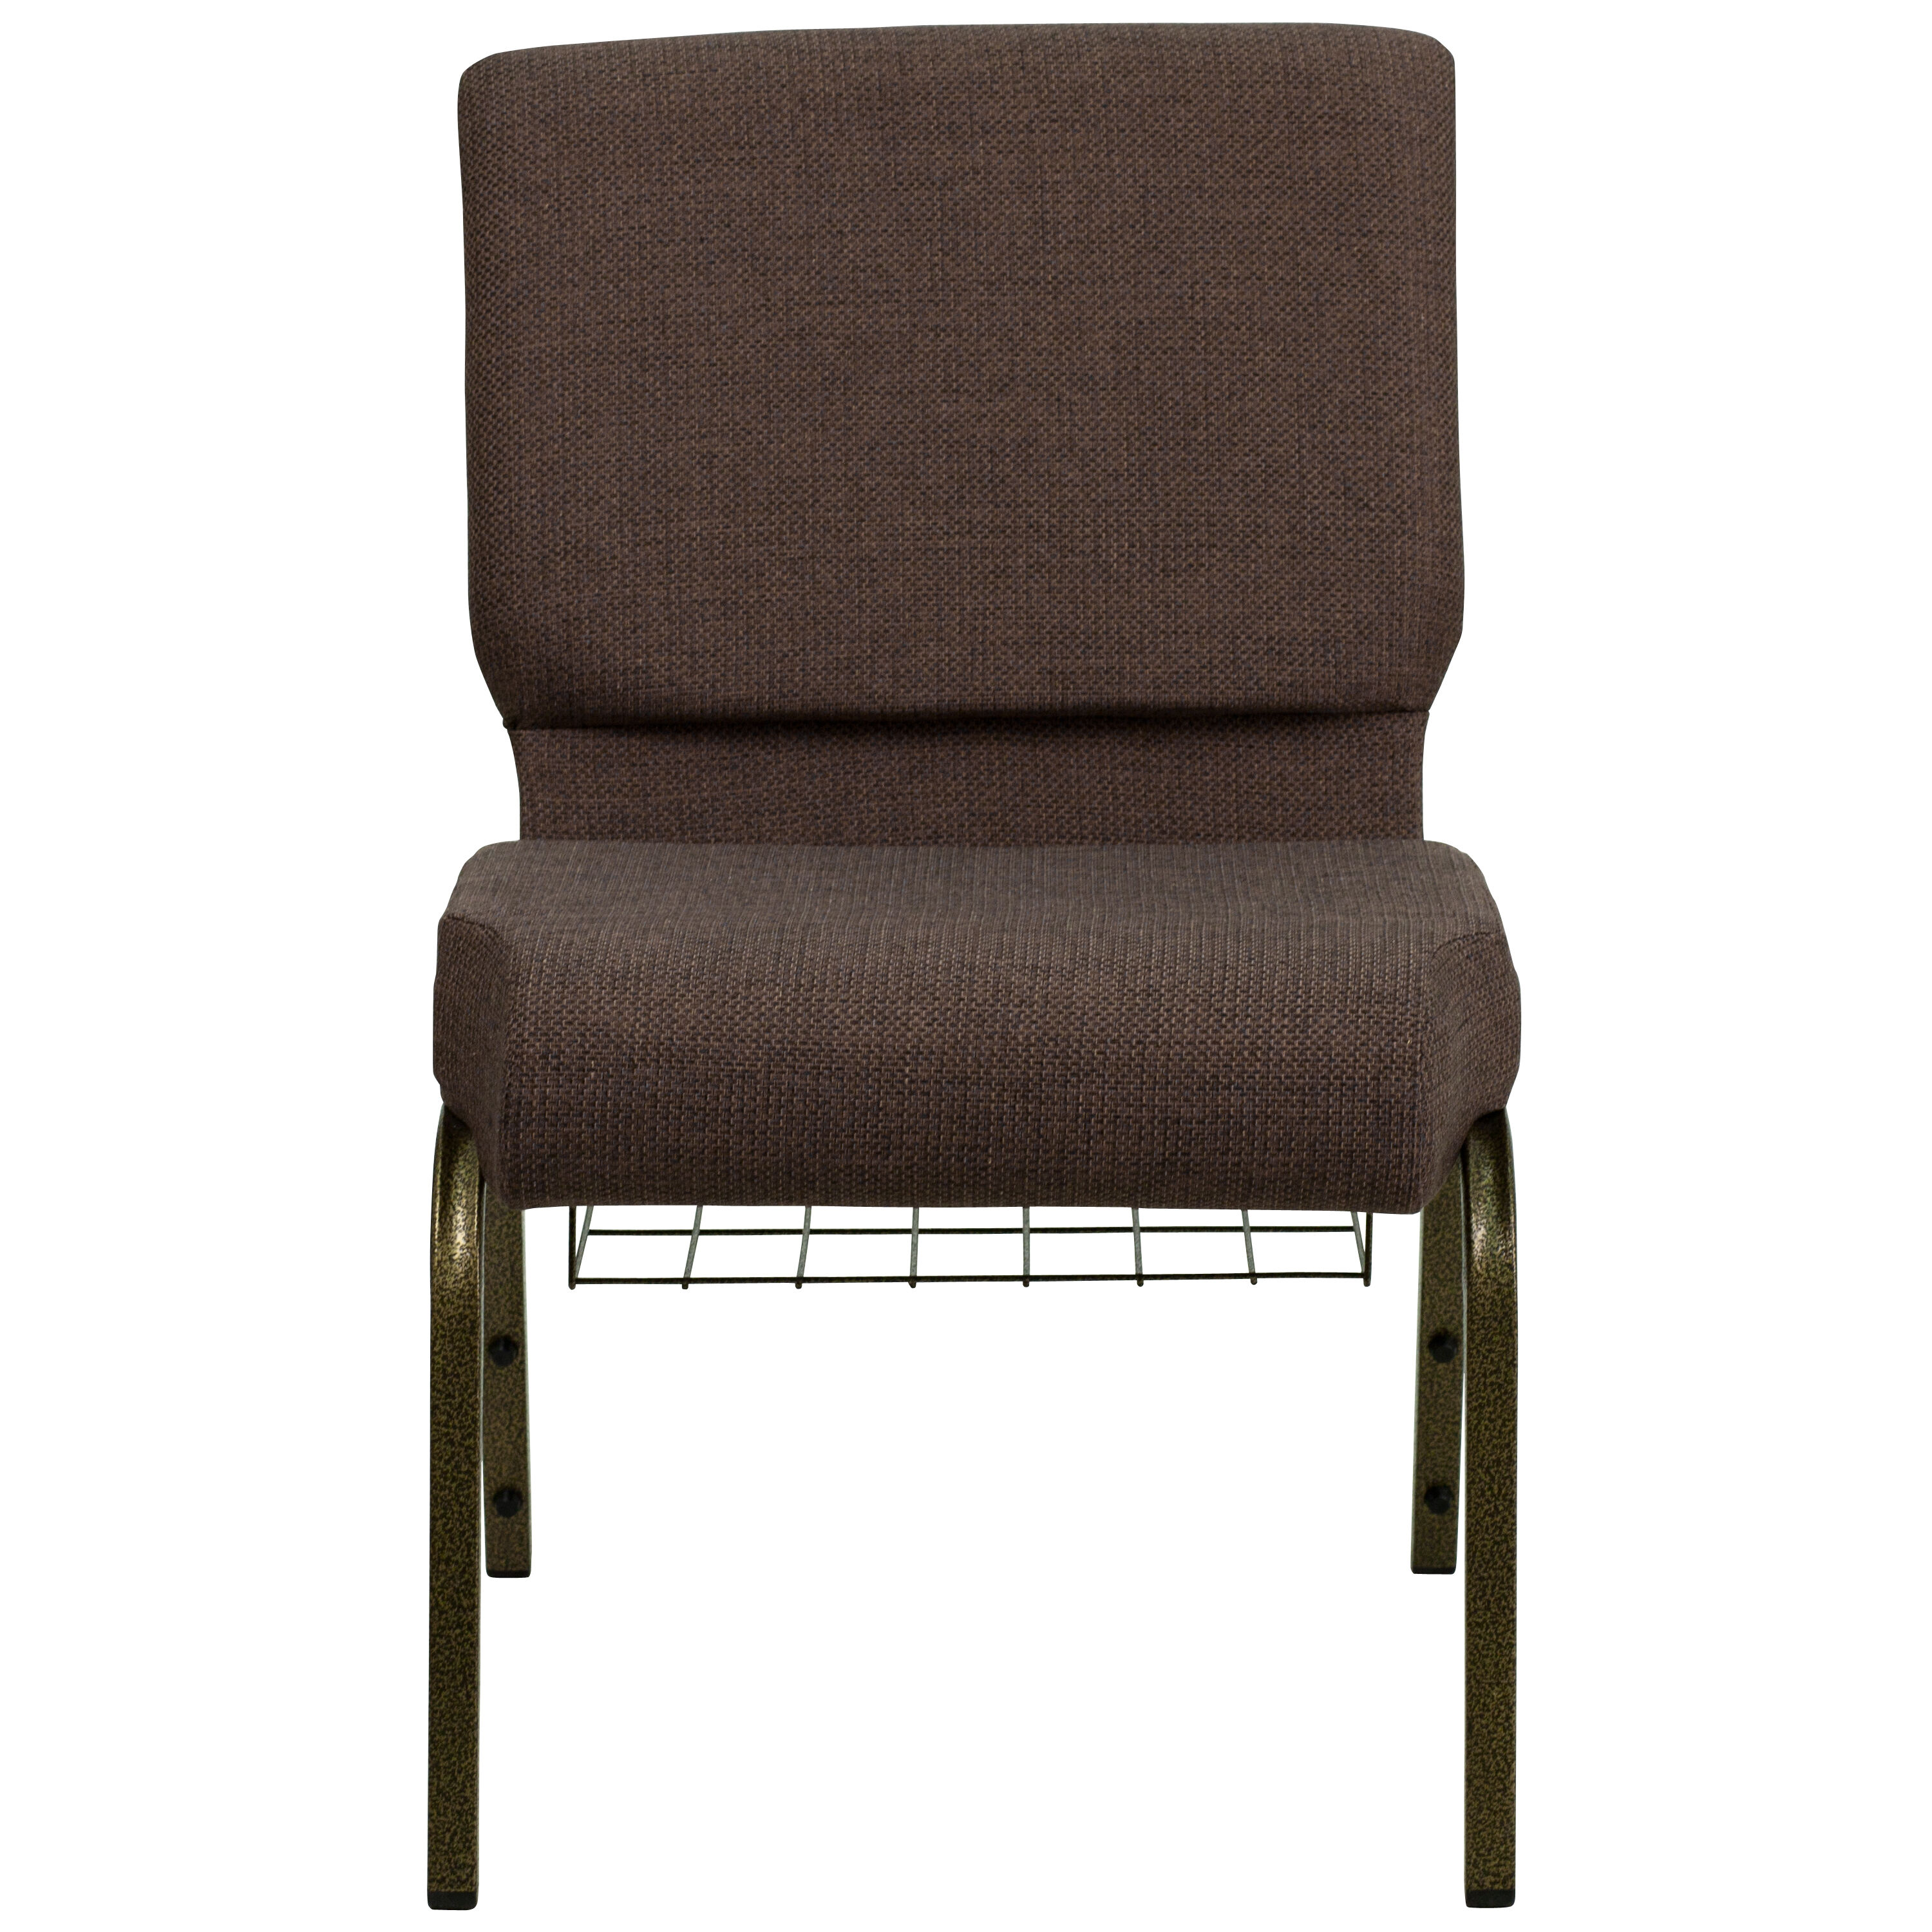 Merveilleux ... Our HERCULES Series 21u0027u0027W Church Chair In Brown Fabric With Cup Book  Rack ...